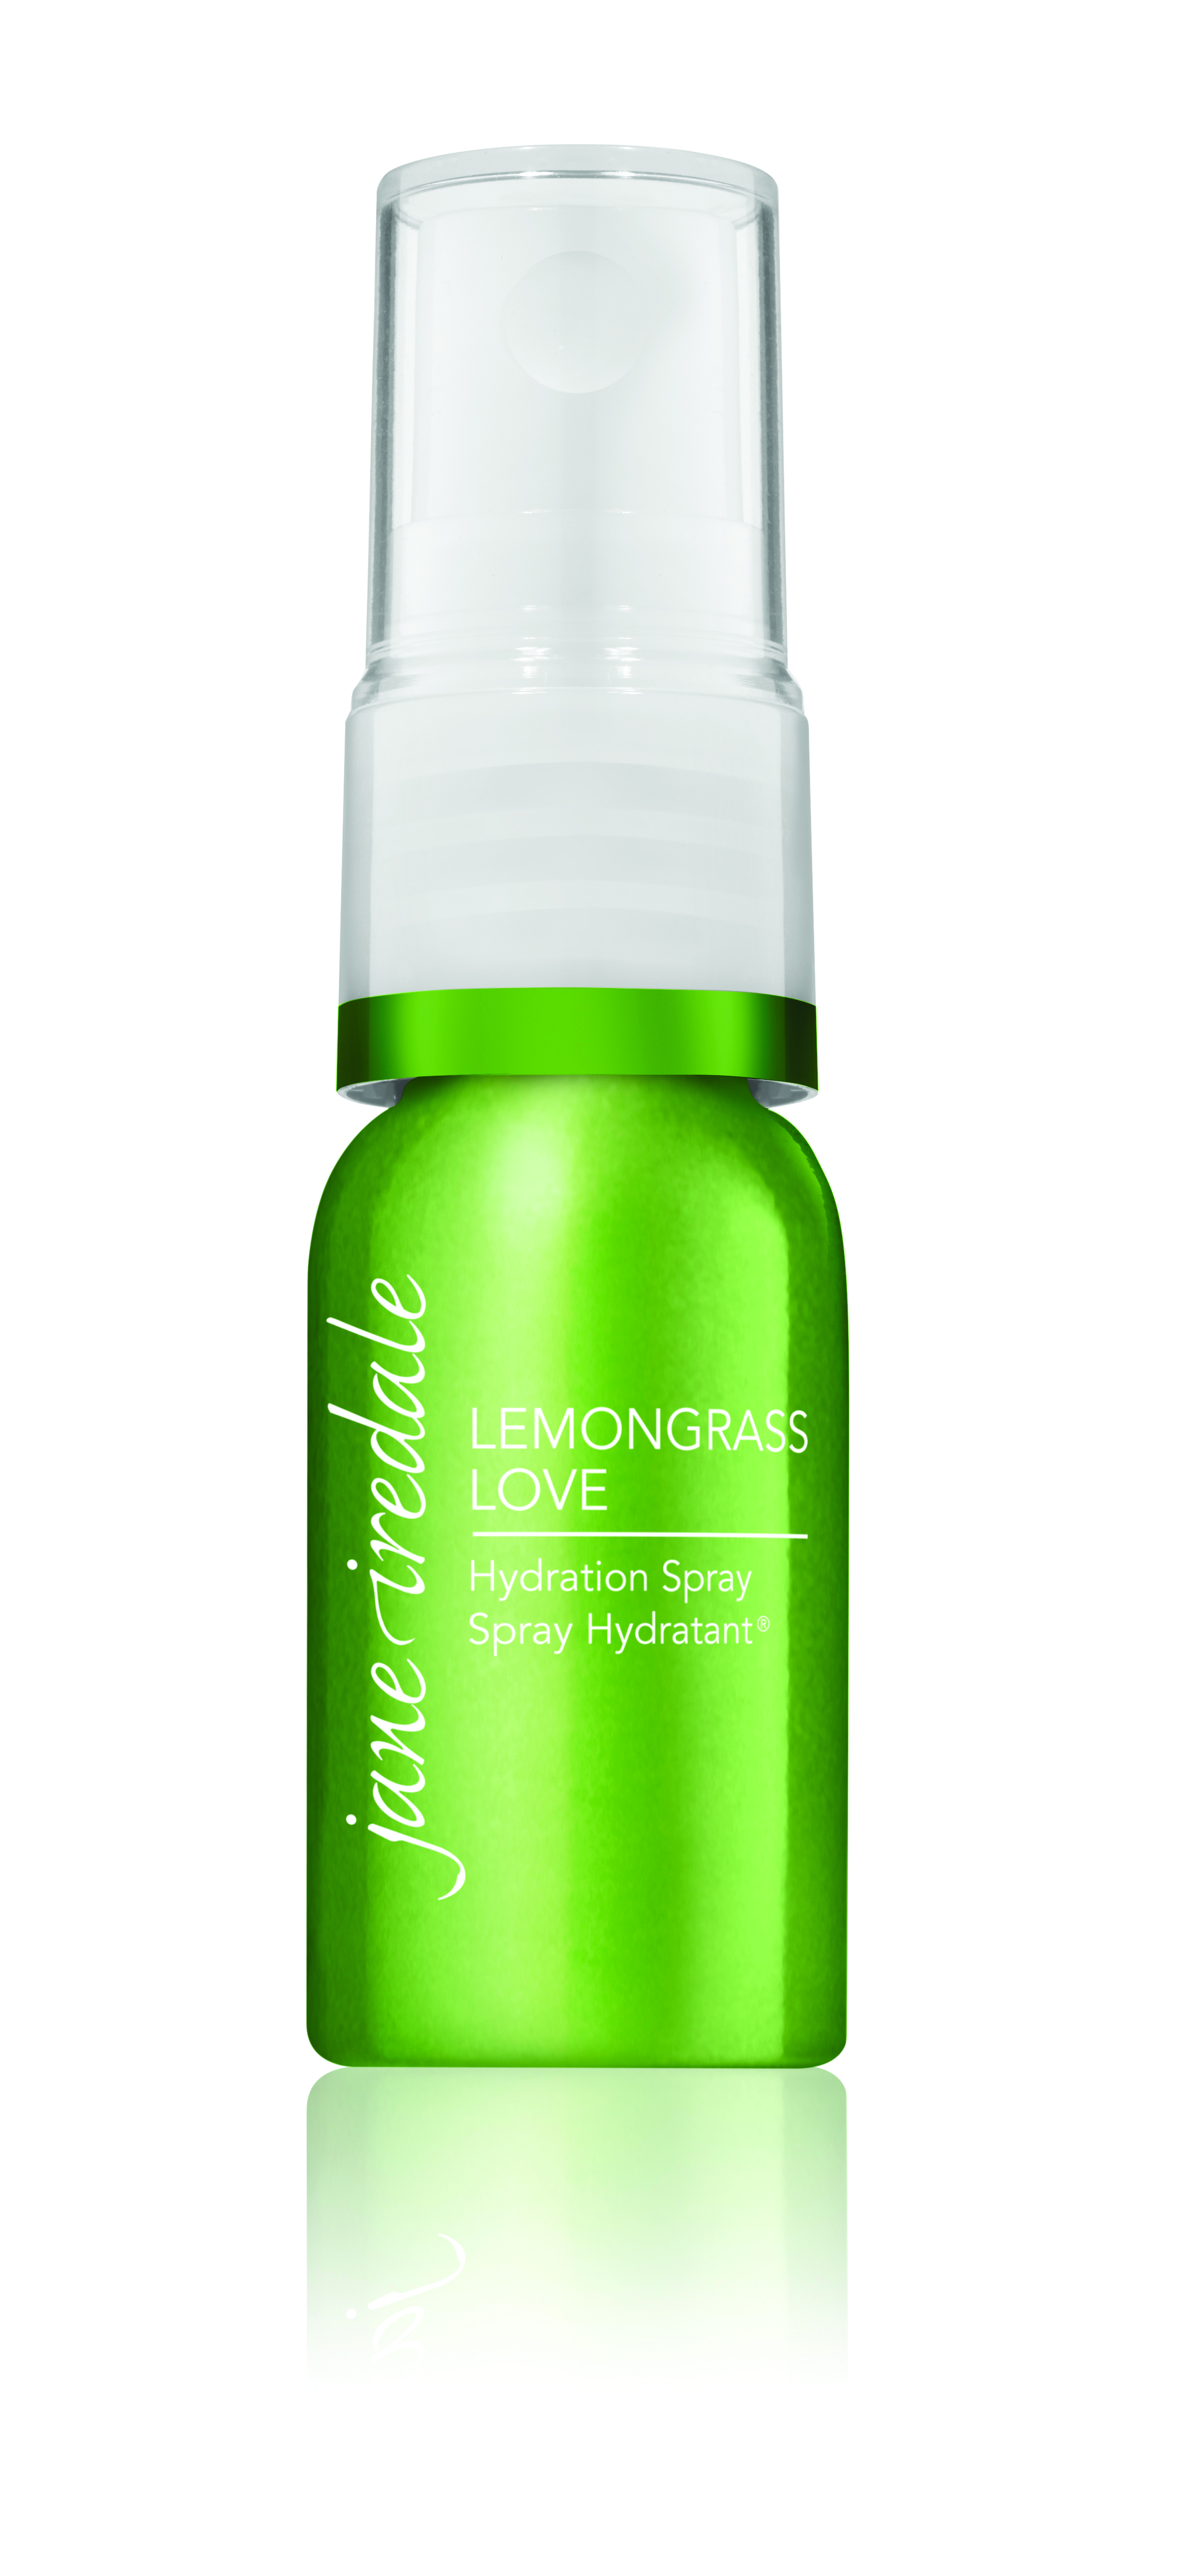 Don't let a long flight dry out your skin before arrival! Jane Iredale: Lemongrass Mini Hydration Spray $11